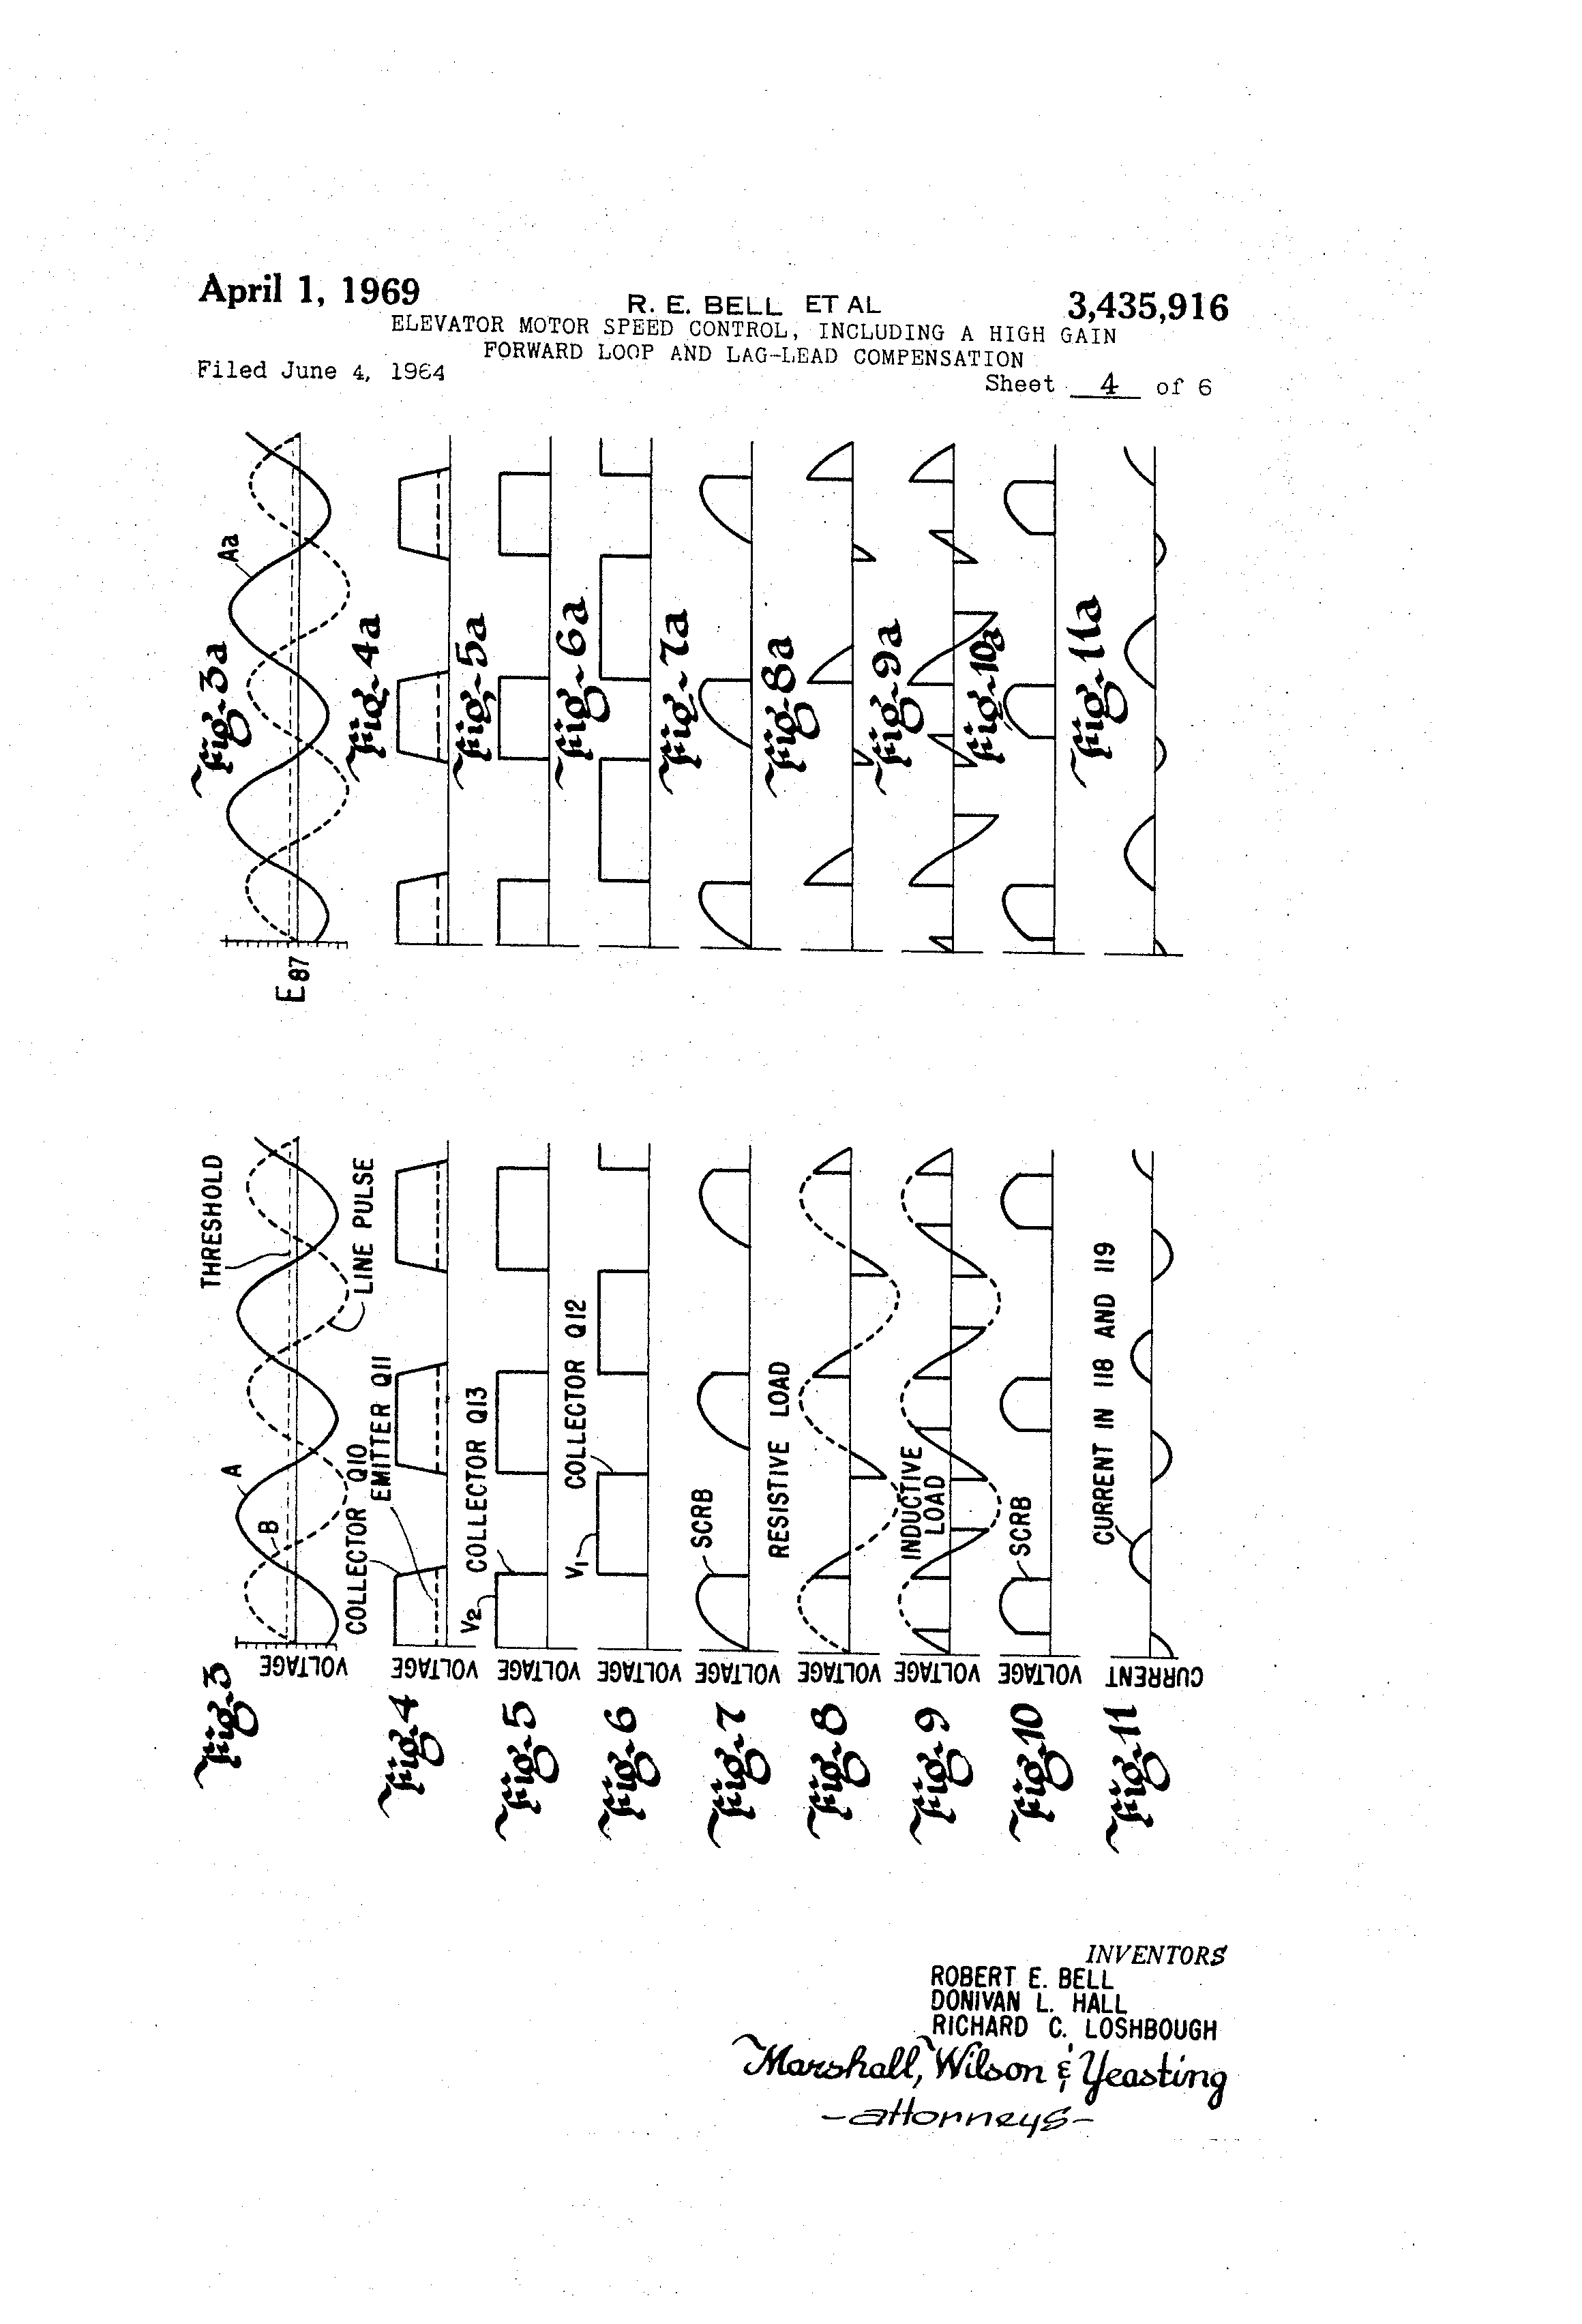 patent us3435916 elevator motor speed including a high gain forward loop and lag lead